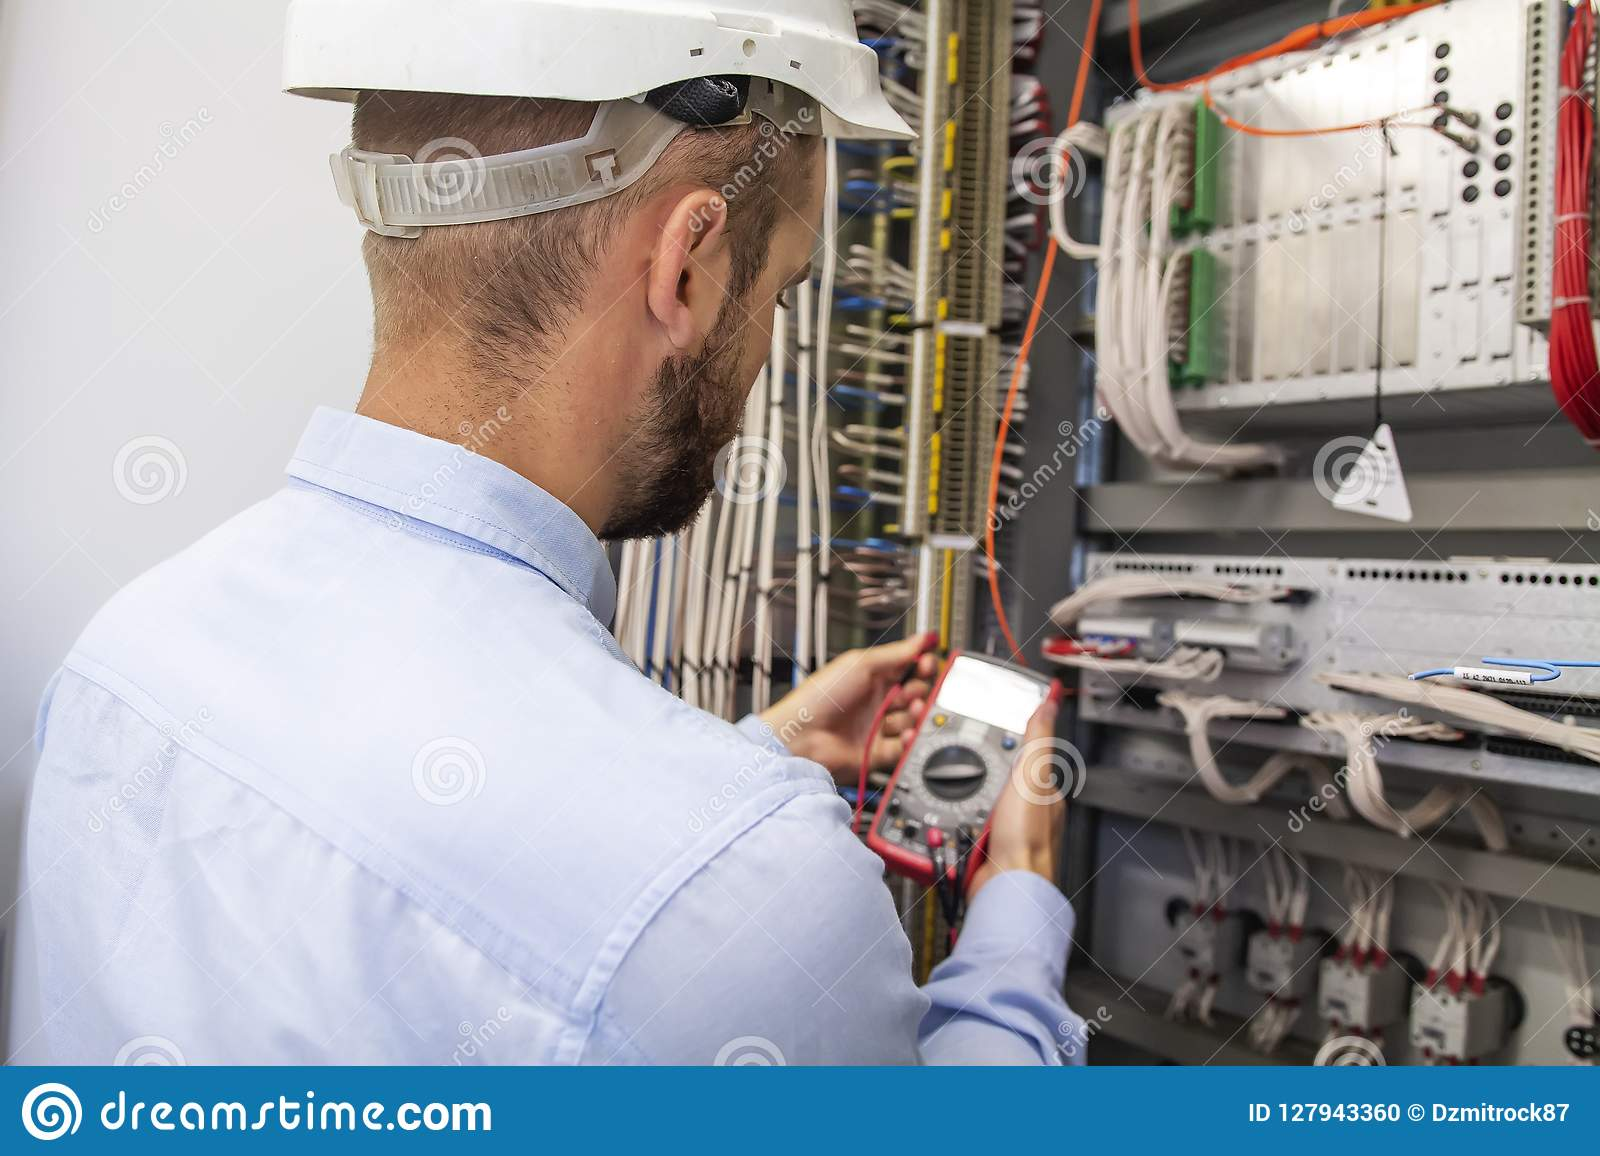 hight resolution of young adult electrician builder engineer inspecting electricyoung adult electrician builder engineer inspecting electric equipment in distribution